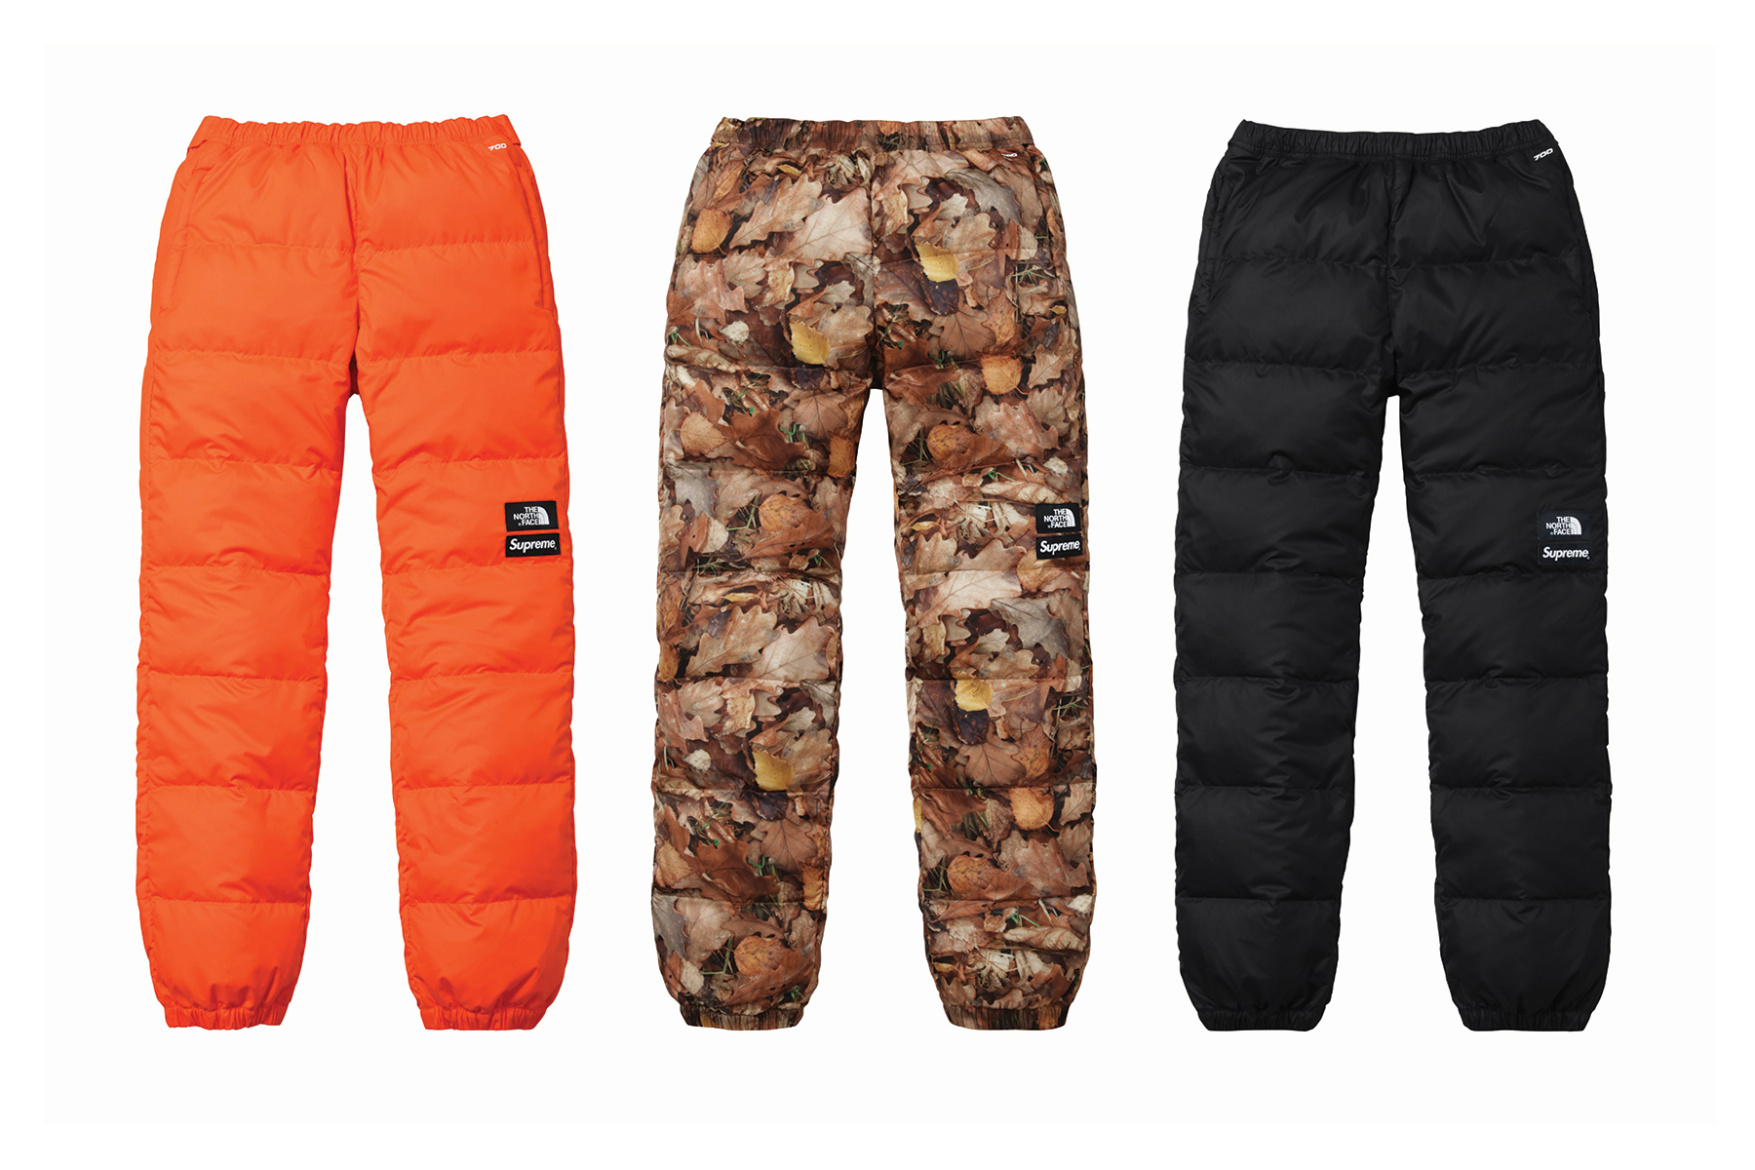 supreme-x-the-north-face-2016-fall-winter-collection-28